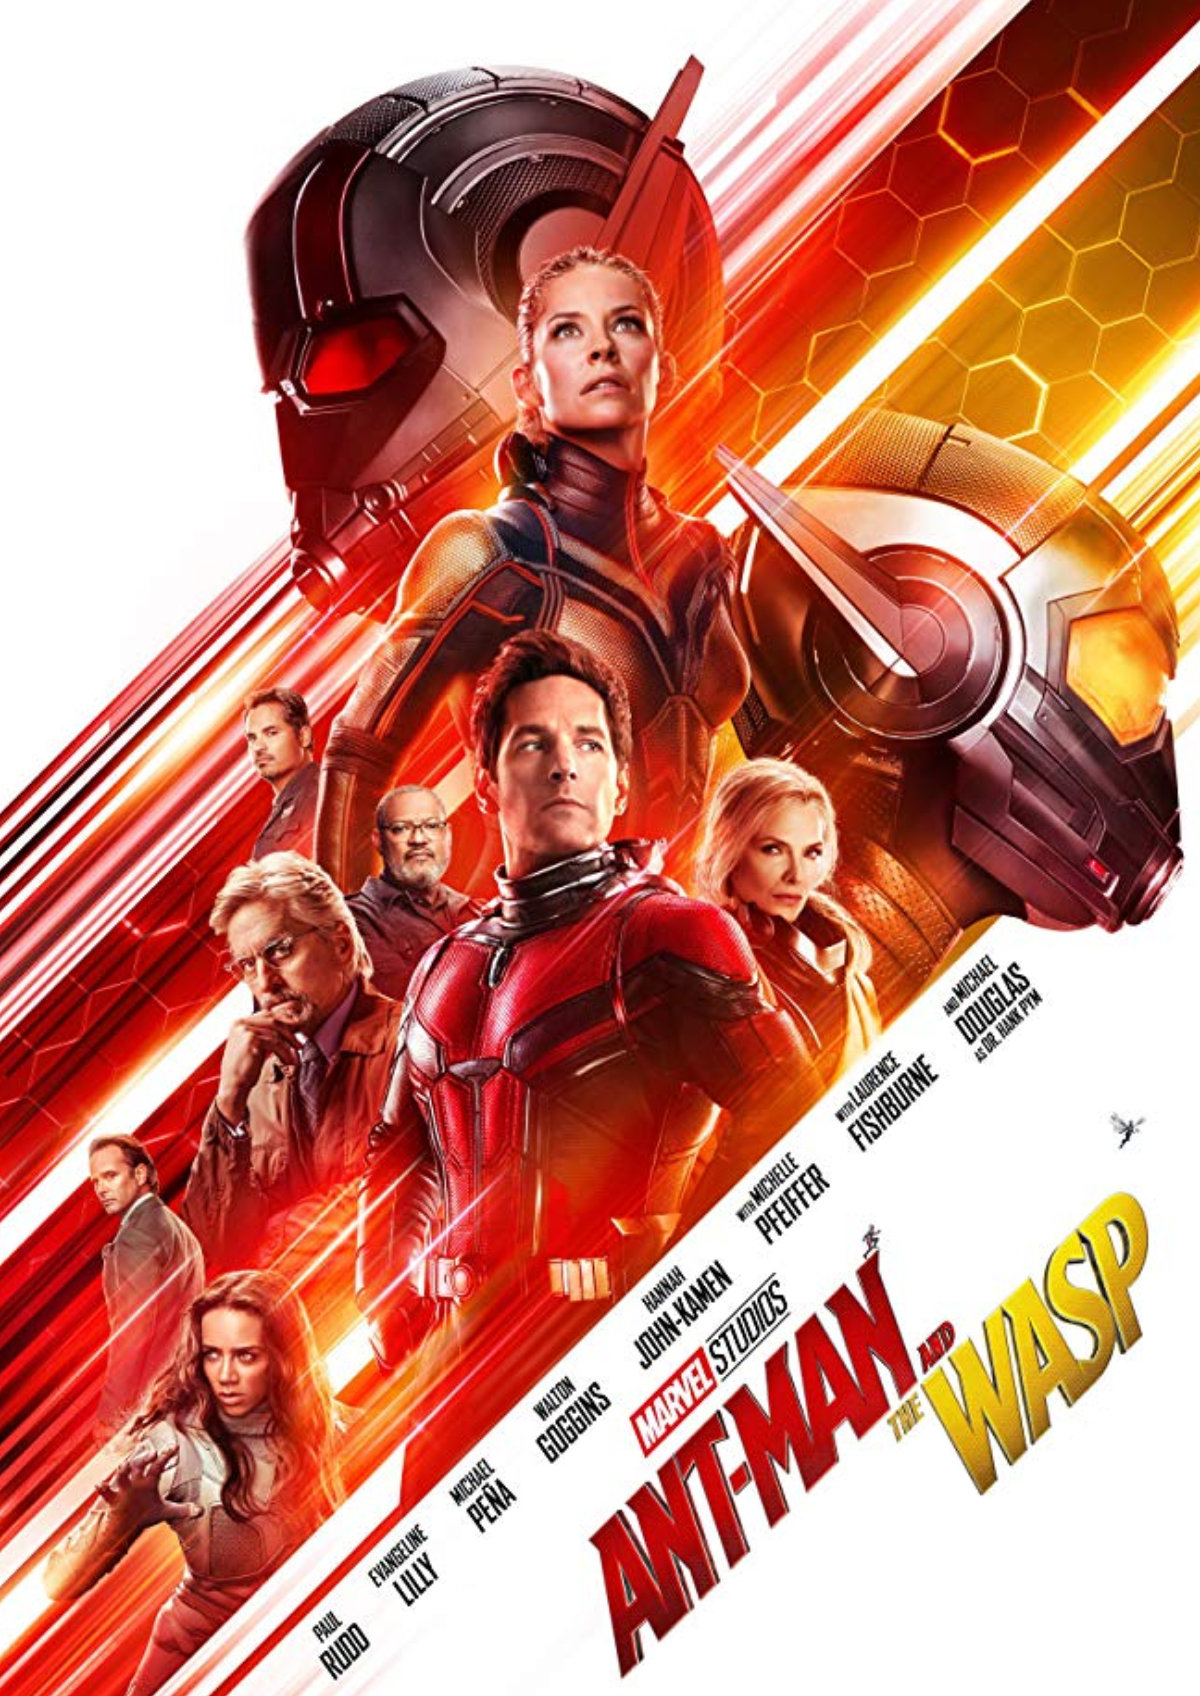 'Ant-Man And The Wasp' movie poster